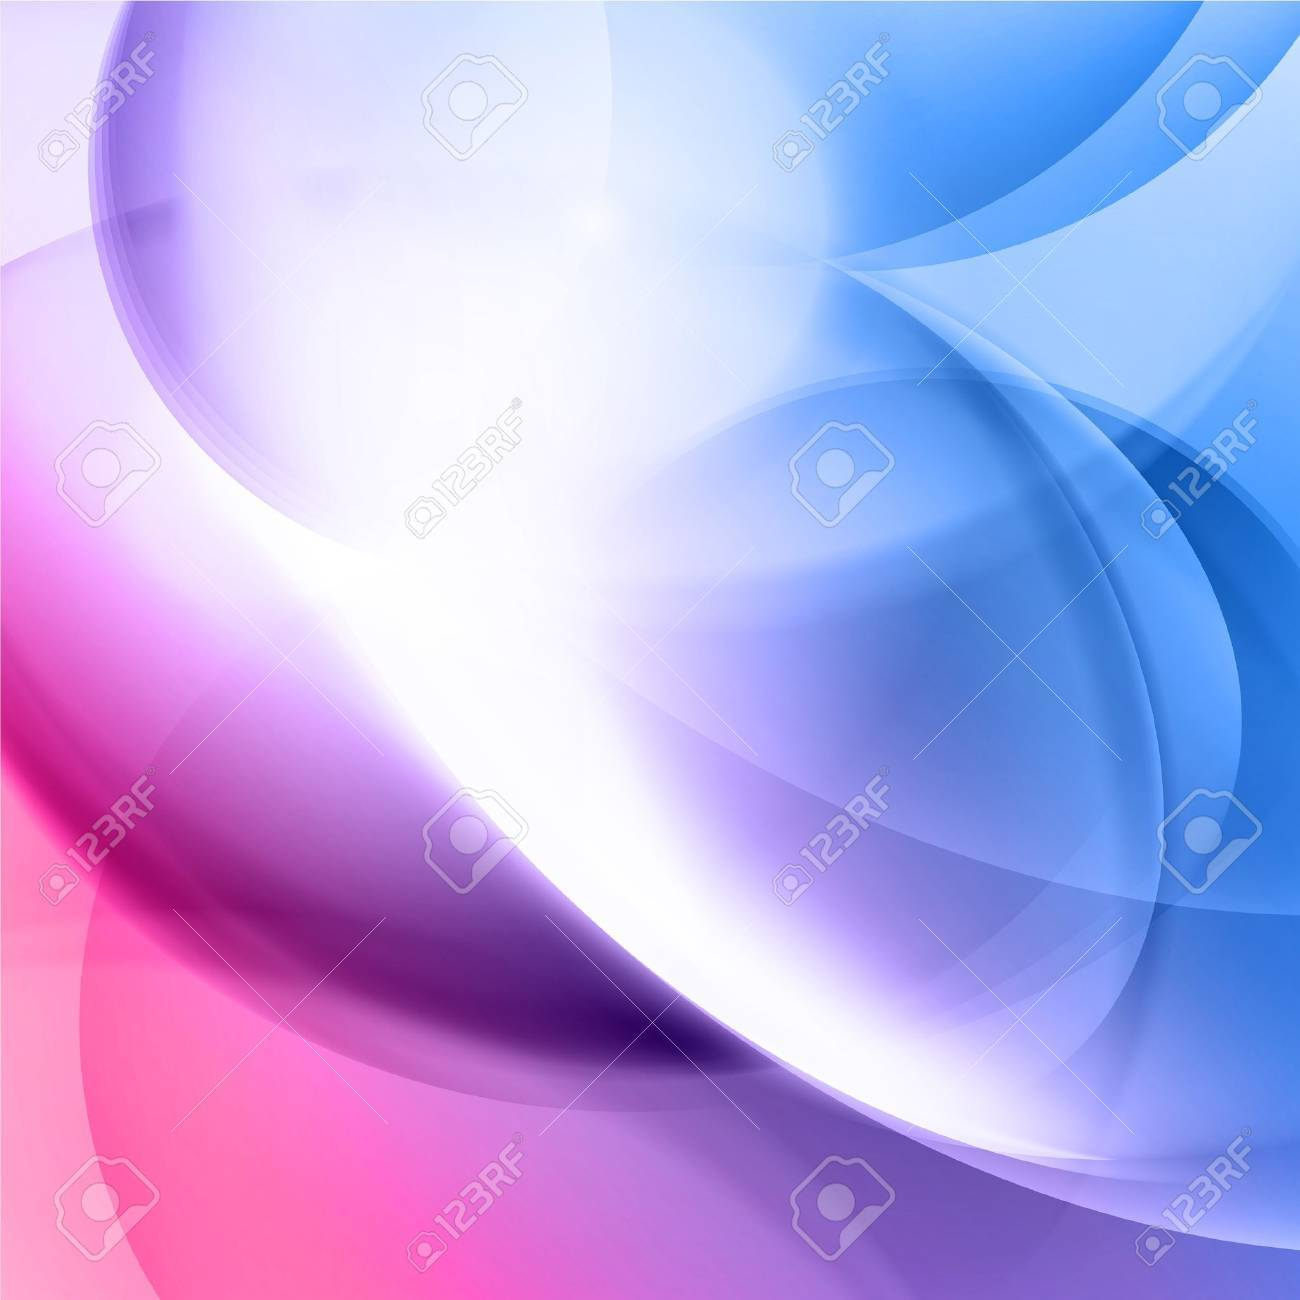 Abstract Background Vector - 11587340